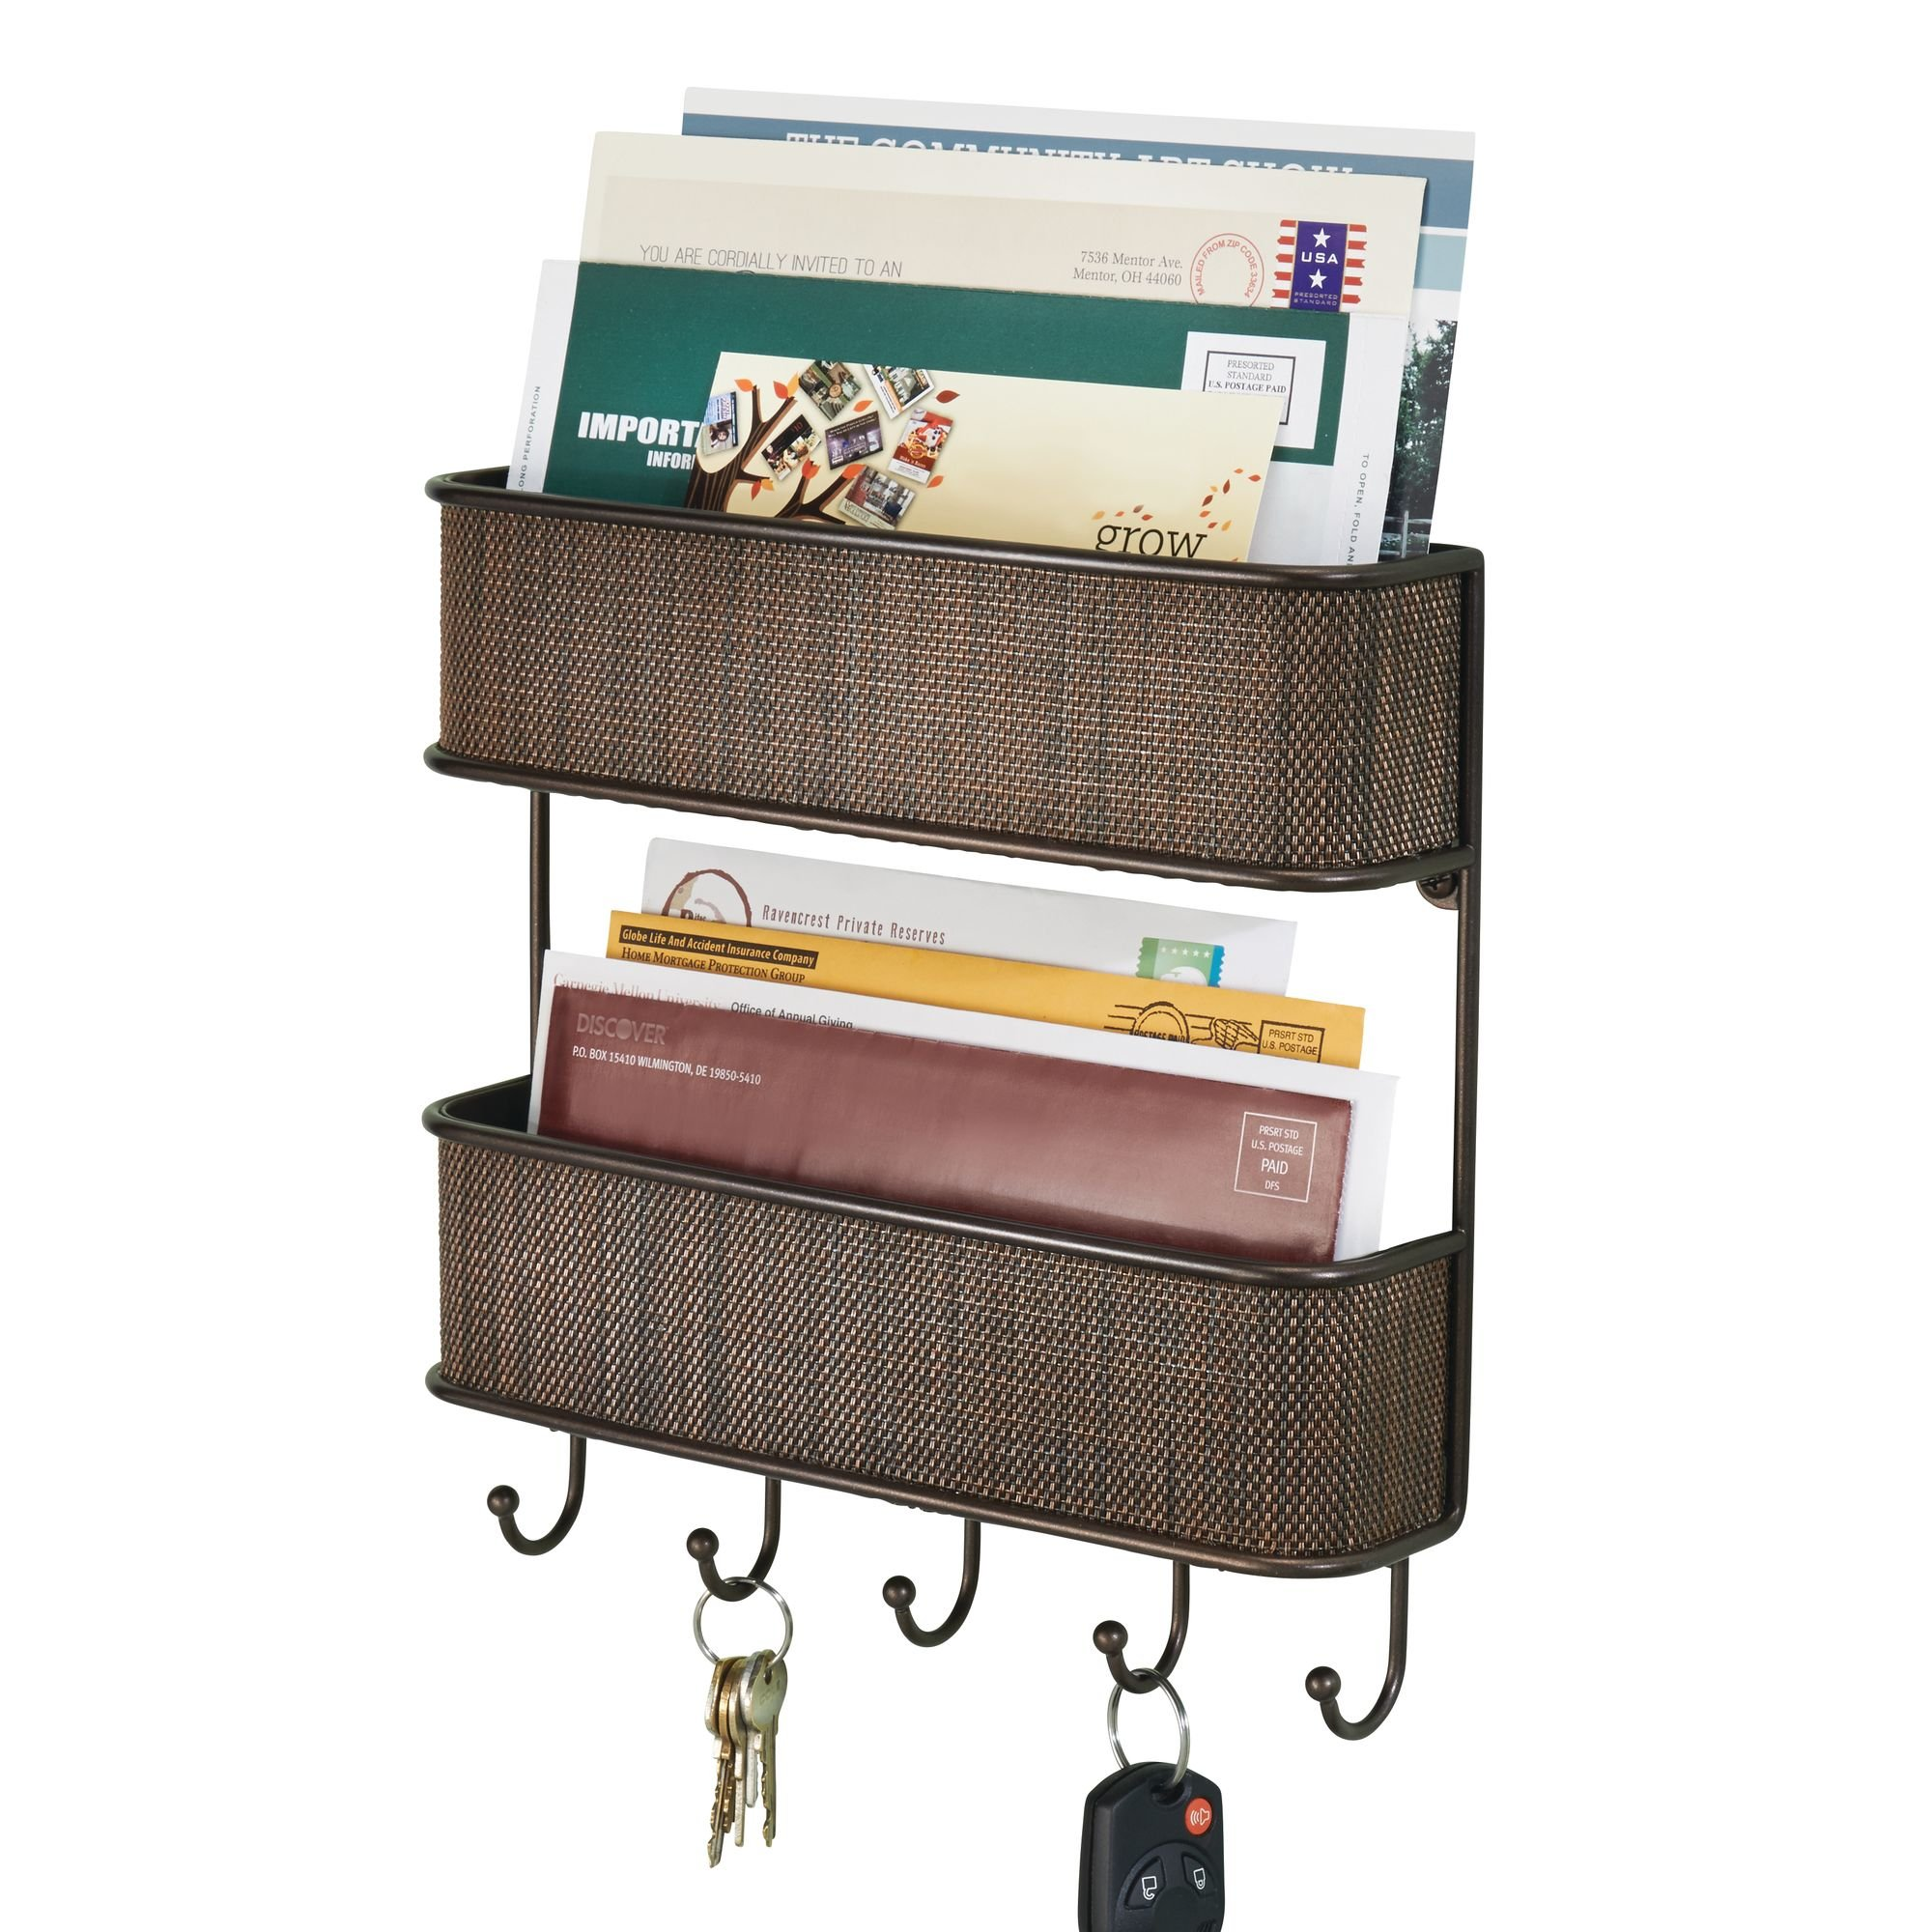 mDesign Two-Tier Vertical Small Metal Wall Mount Hanging Mail/Letter Holder and Key Rack hooks Entryway Storage Organizer - Bronze